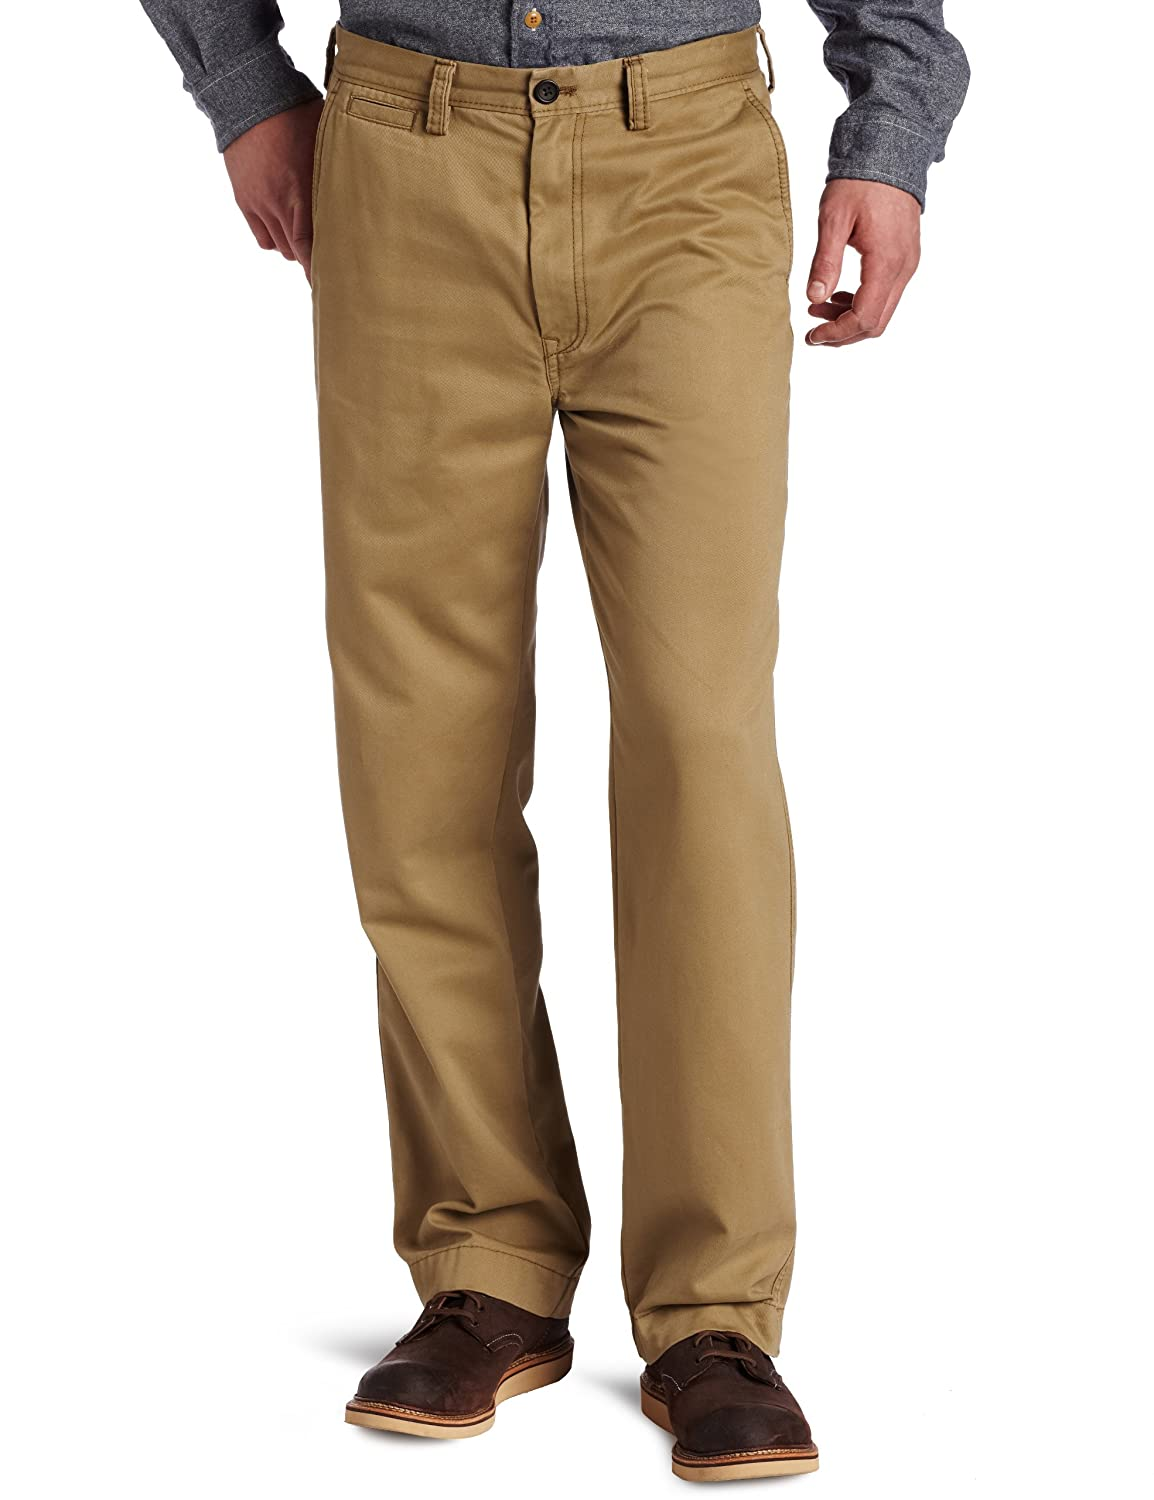 Also, khaki is a color; chino is a style.) Men can wear them without having to get caught up in denim, which tends to breed cultish followings, especially for raw-selvedge jeans. Chinos are more neutral, .